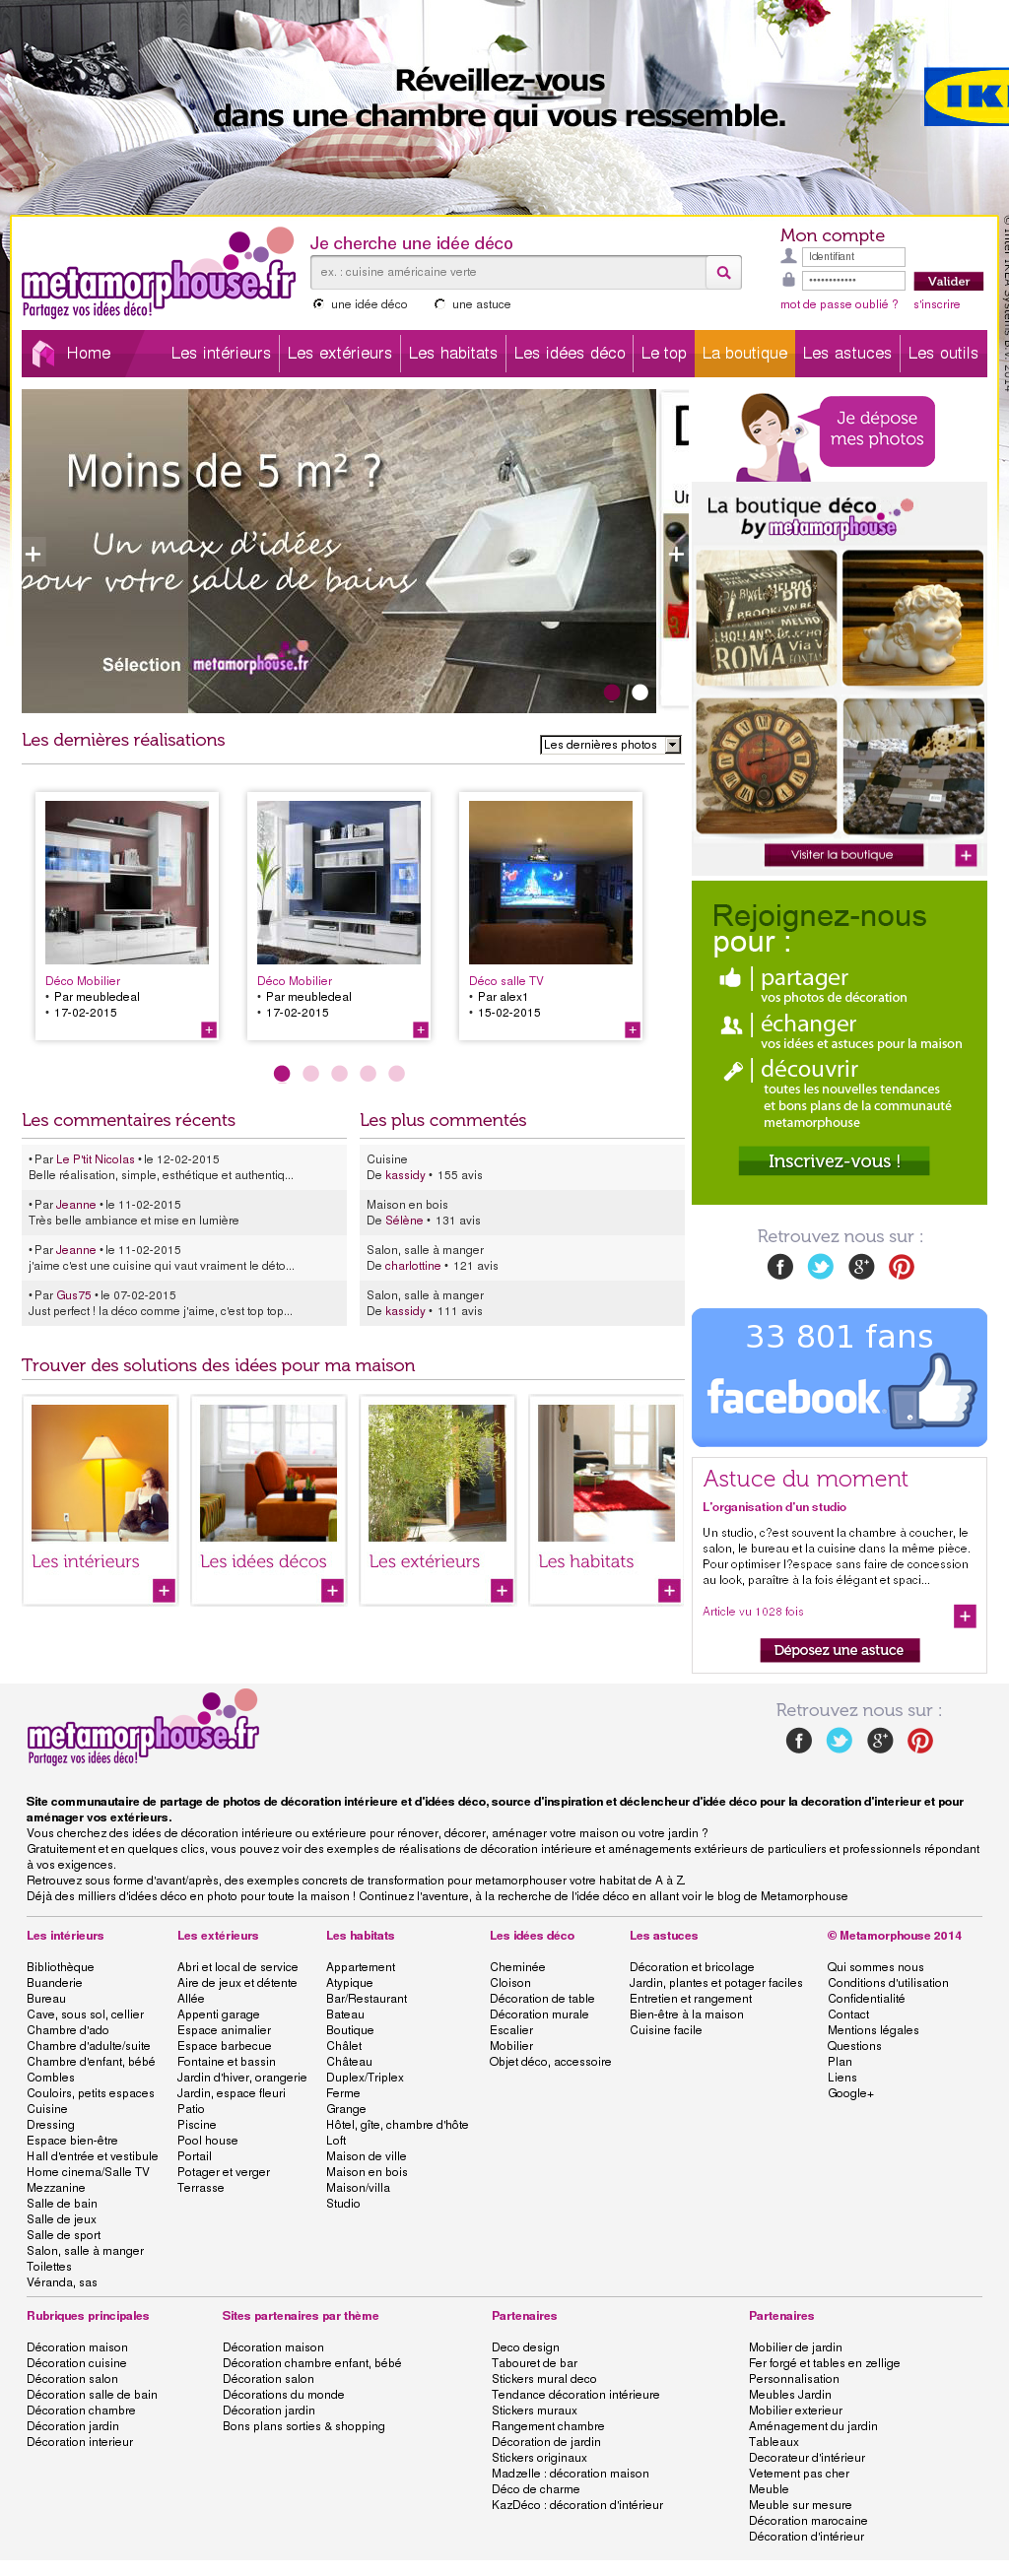 Metamorphouse.fr Competitors, Revenue and Employees - Owler Company ...